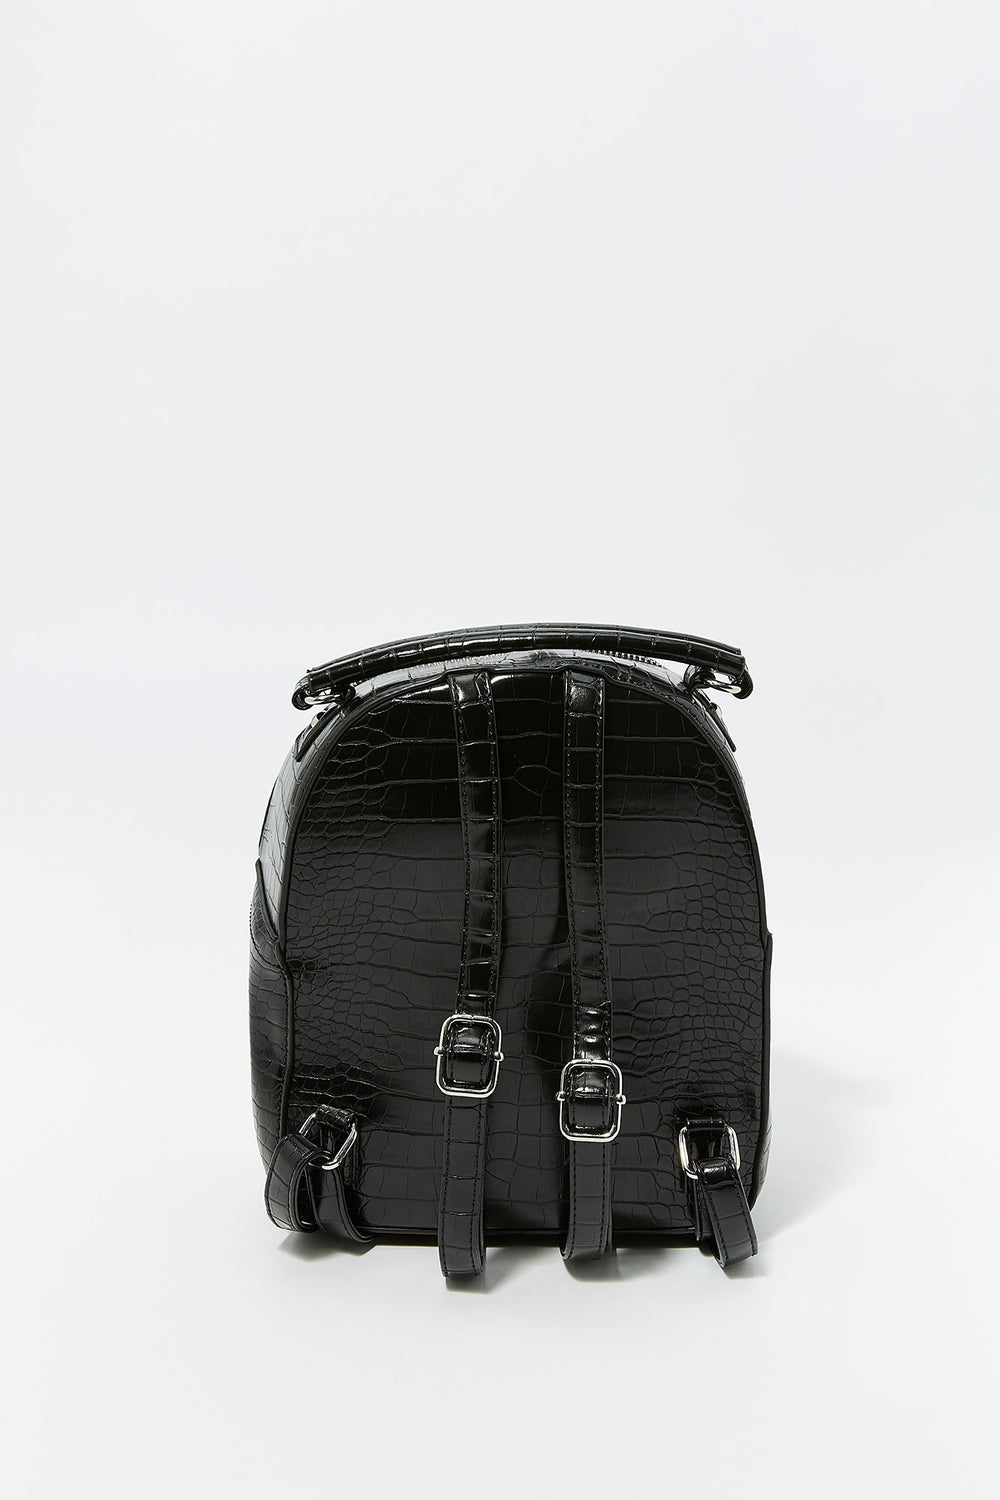 Mini Faux-Leather Crocodile Printed Backpack Black